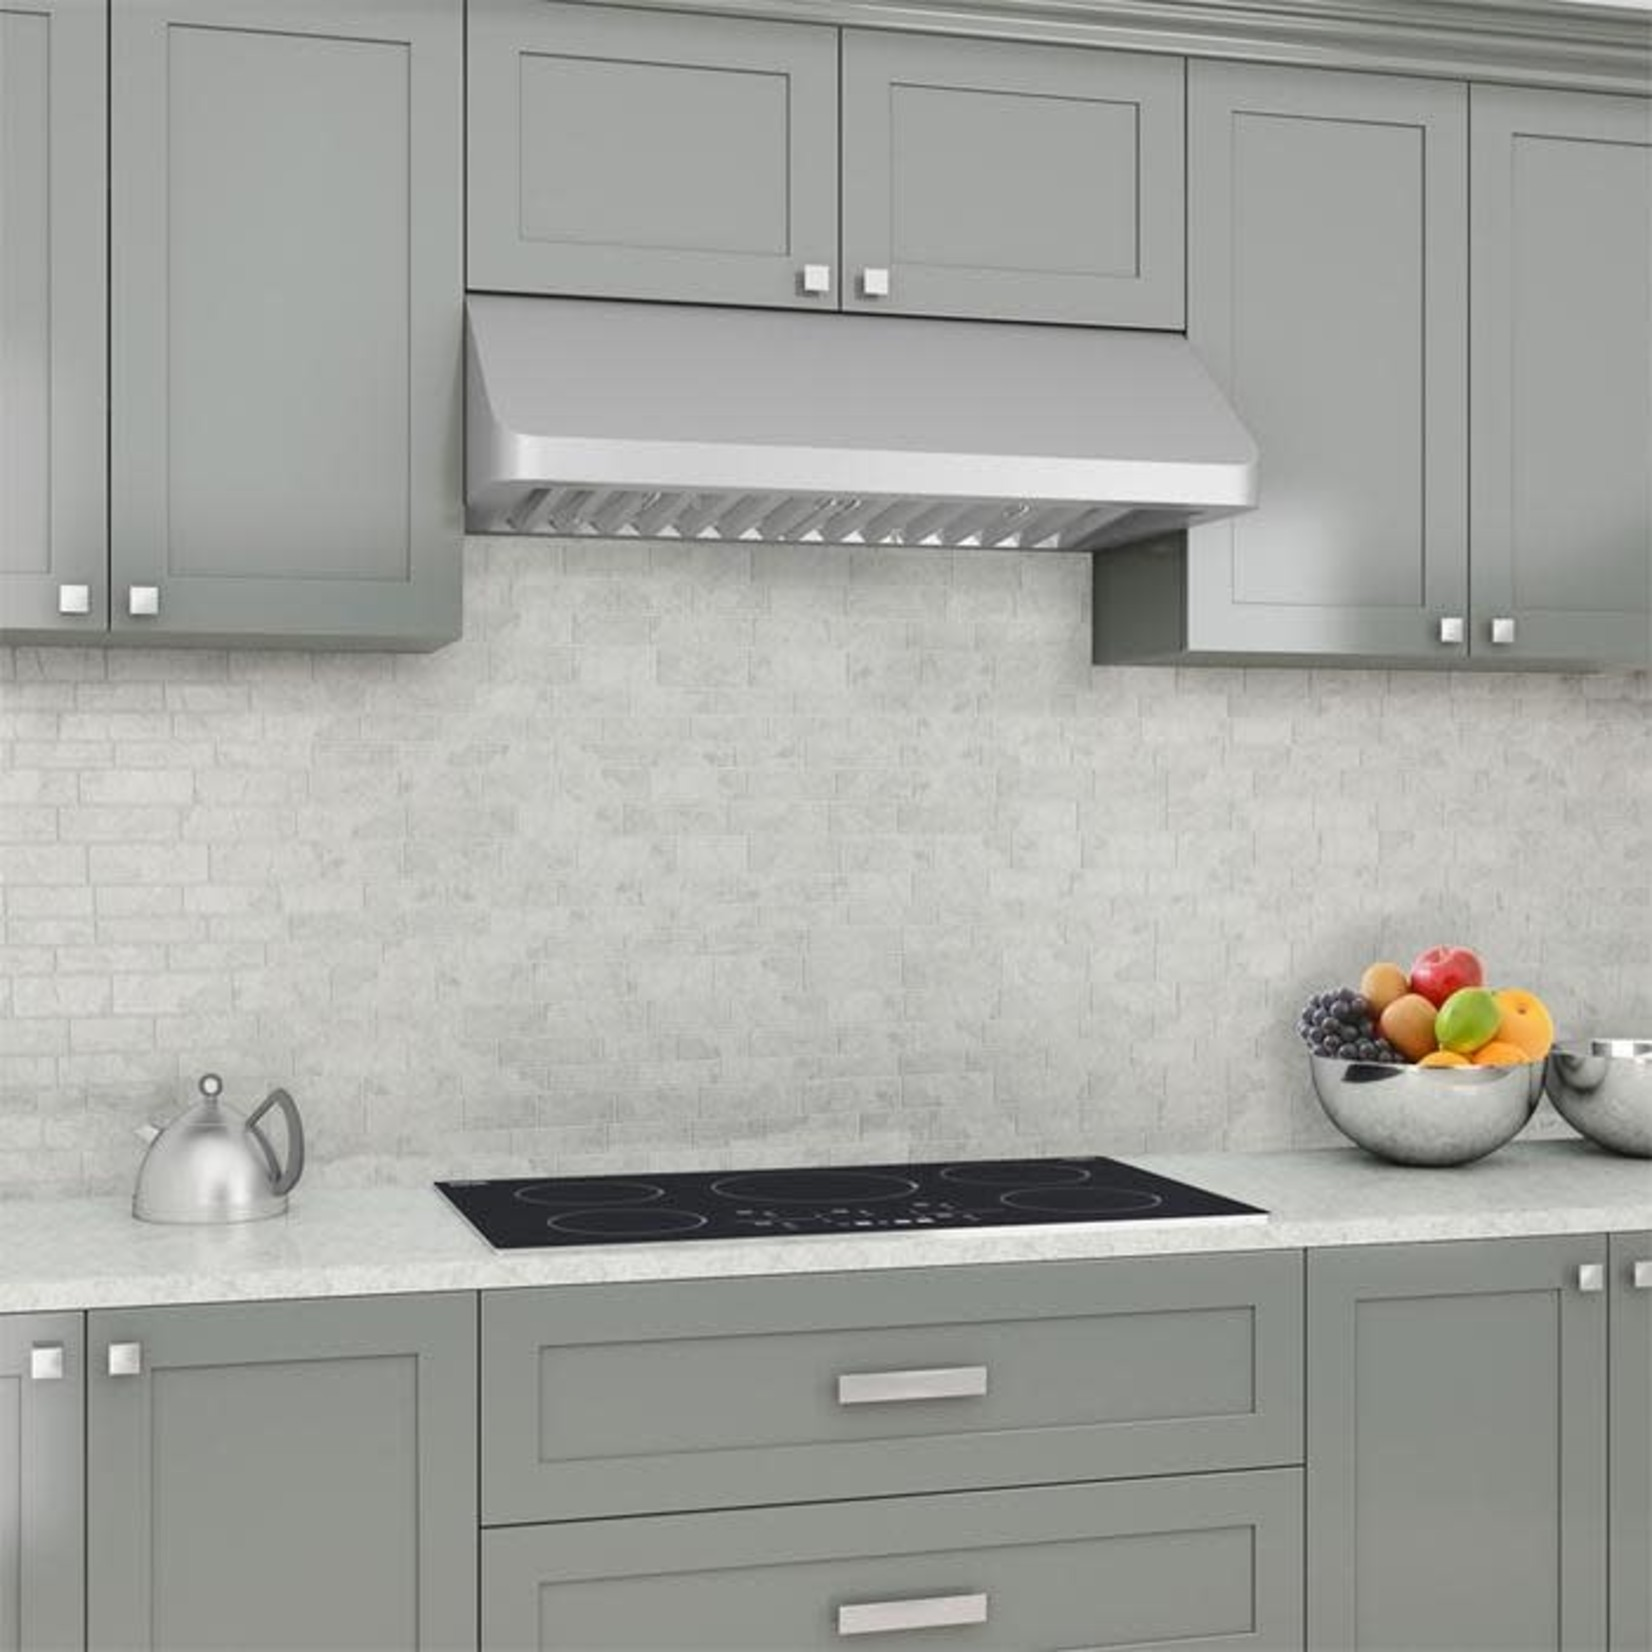 """Ancona AN-1285 Under Cabinet Range Hood Stainless Steel 36"""""""